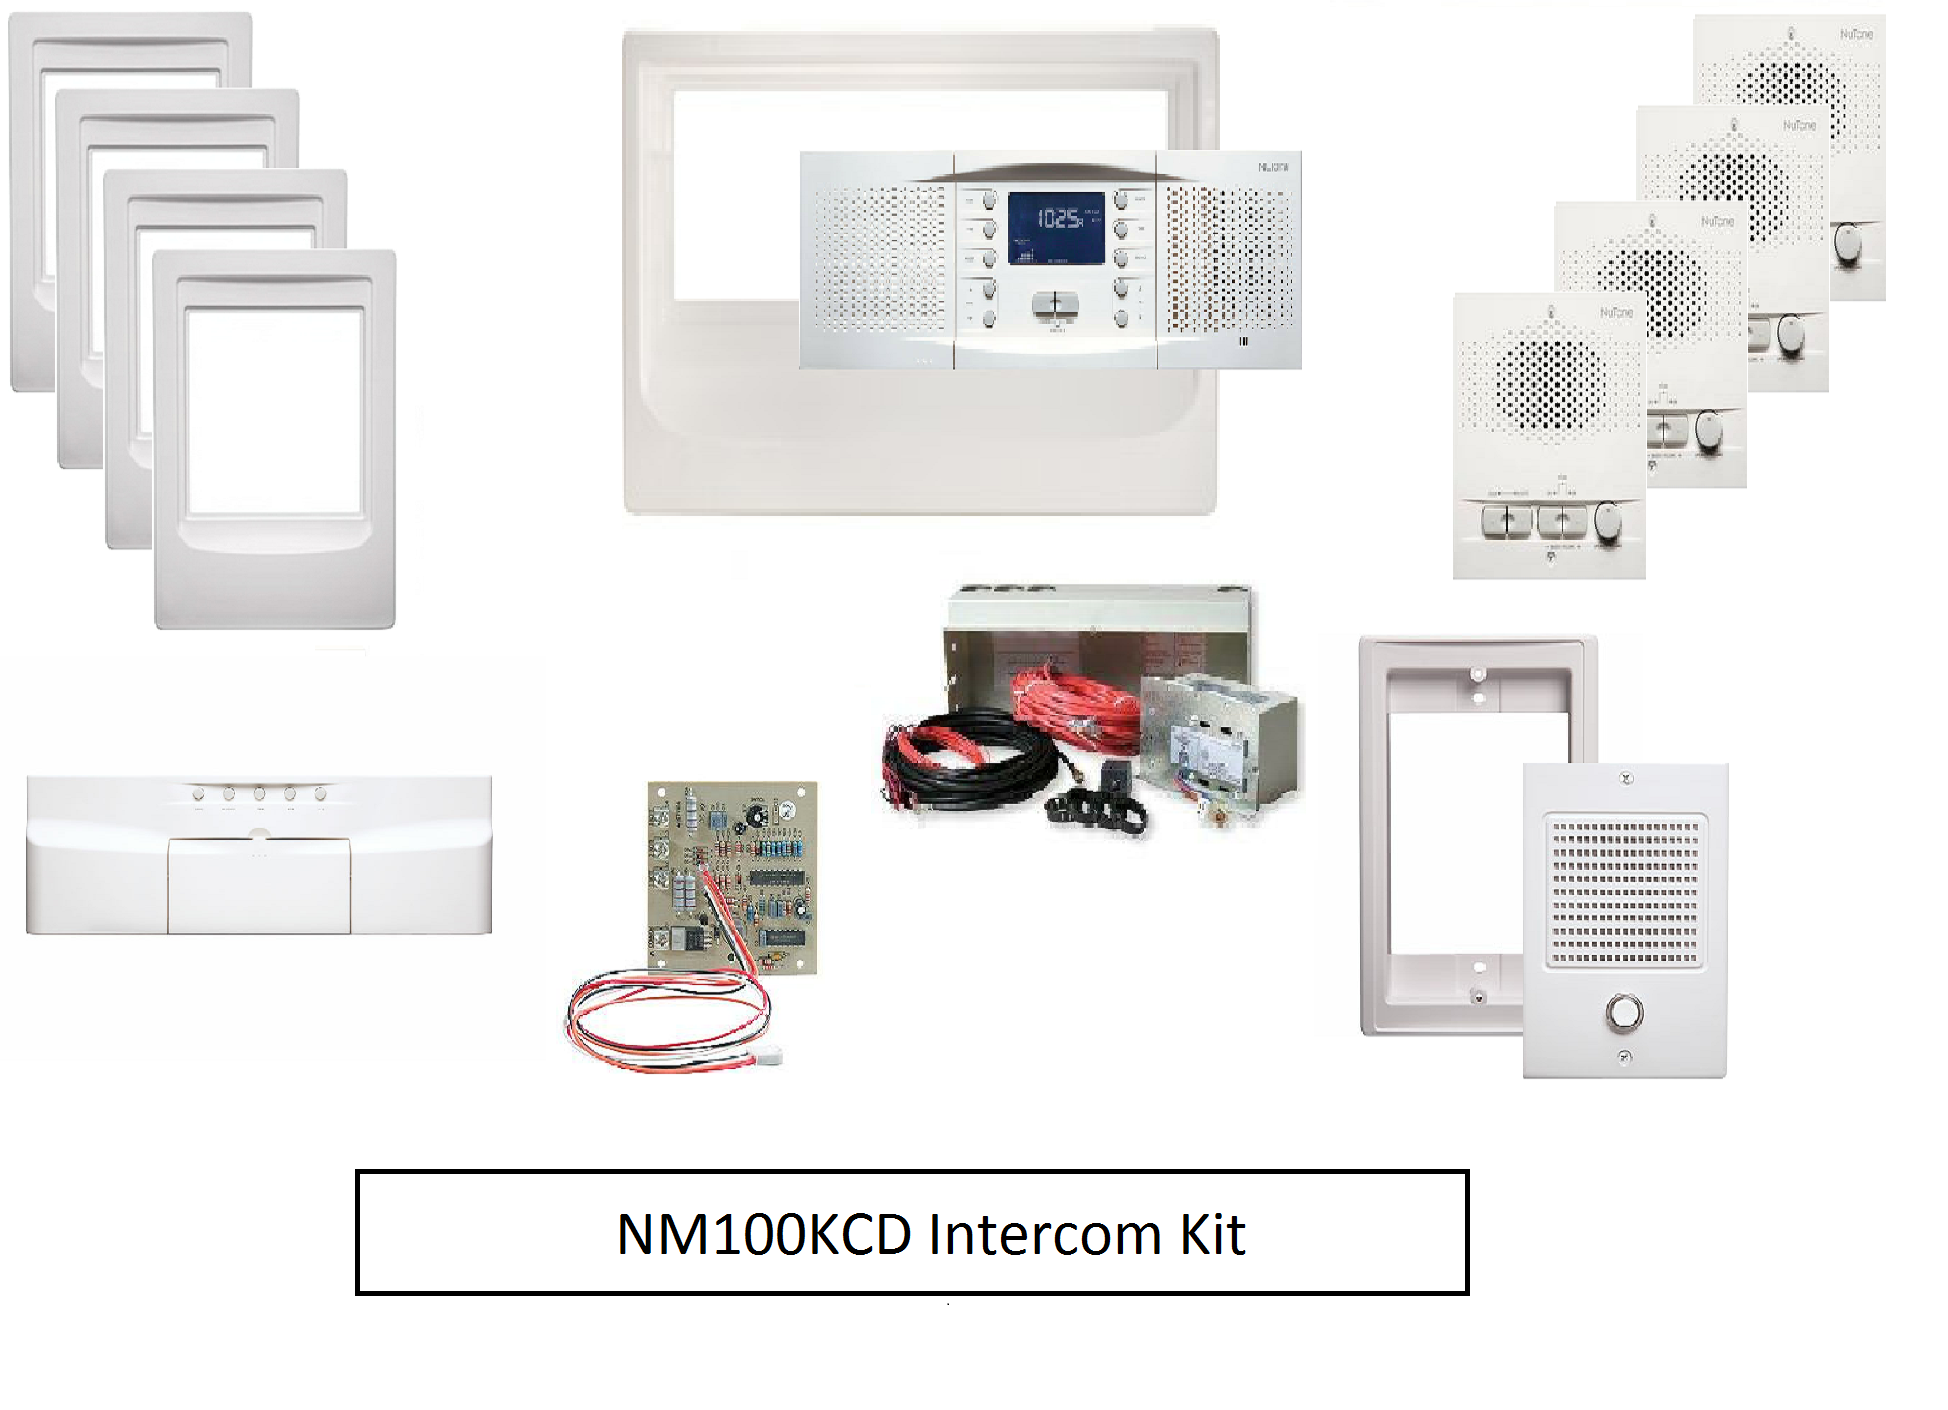 Intercom System Kit - Nutone NM100KCD intercom master station, intercom system with music, intercom speaker, home intercom system, office intercom system, intercom system